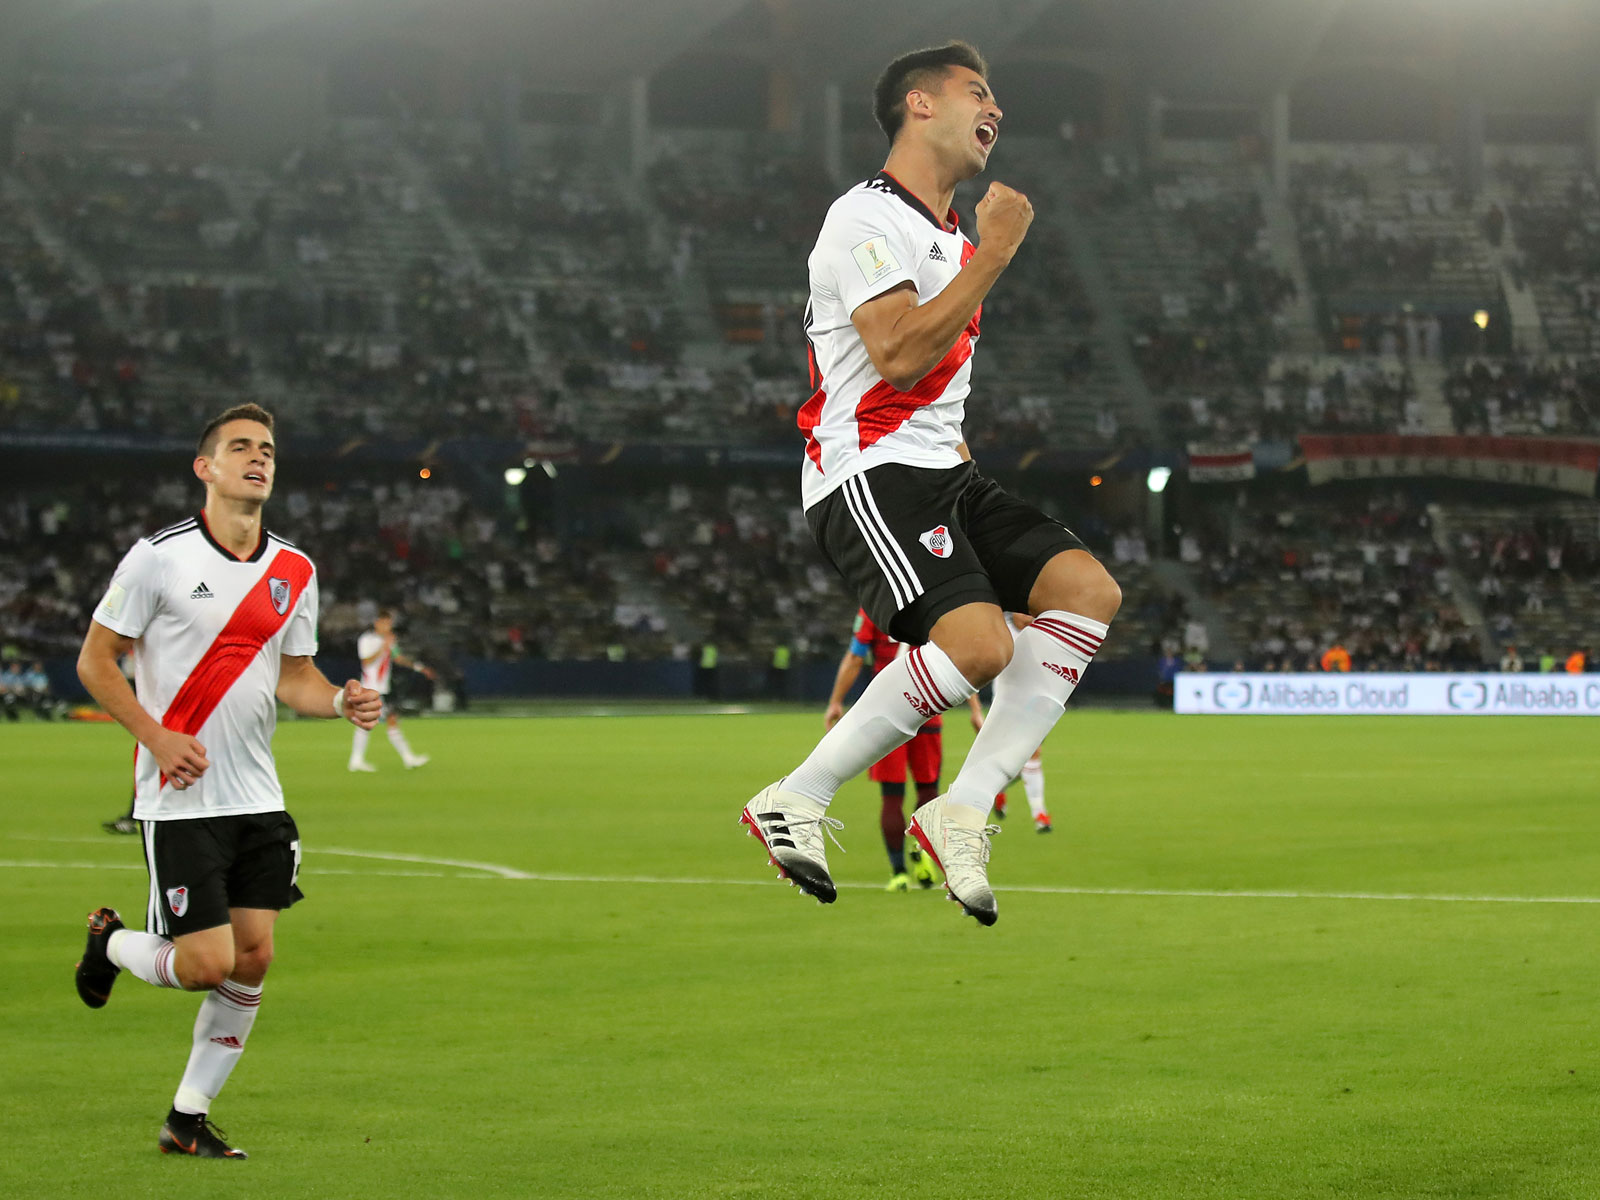 Pity Martinez scores in the FIFA Club World Cup for River Plate